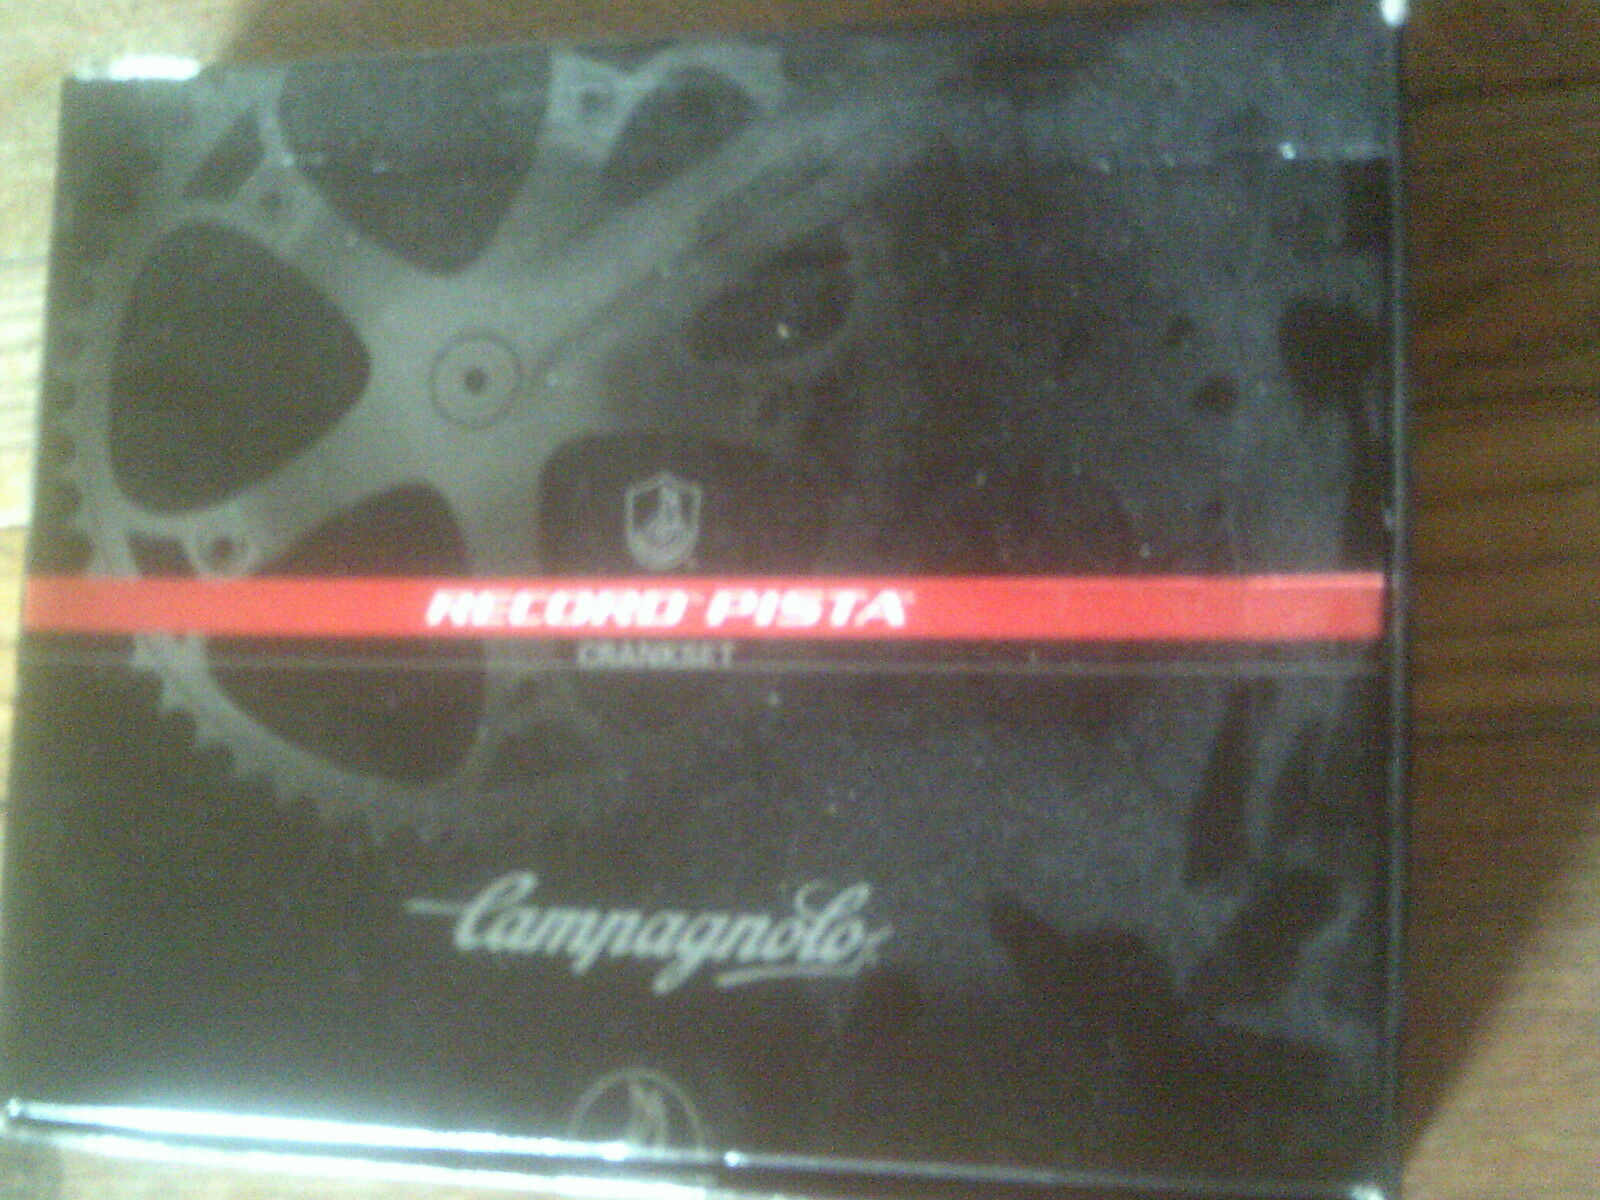 NUOVO RECORD CAMPAGNOLO manovelle pedaliera in, 165 mm, Binario, 18 48 DENTI